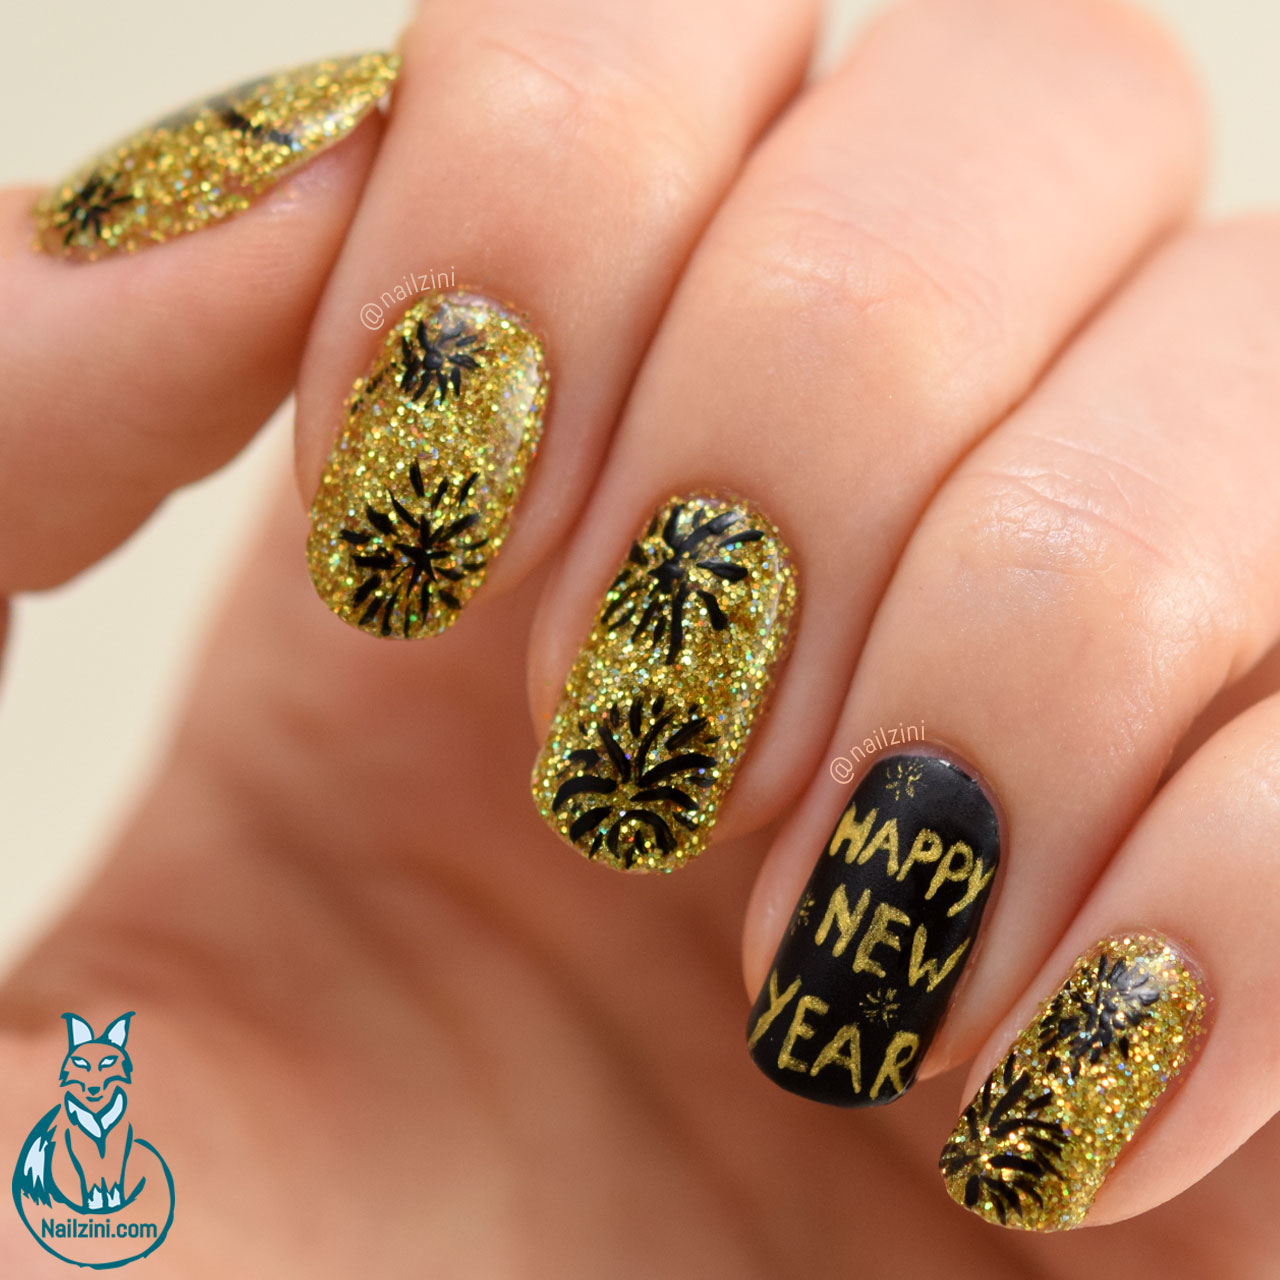 Holographic New Year Fireworks Nail Art Nailzini